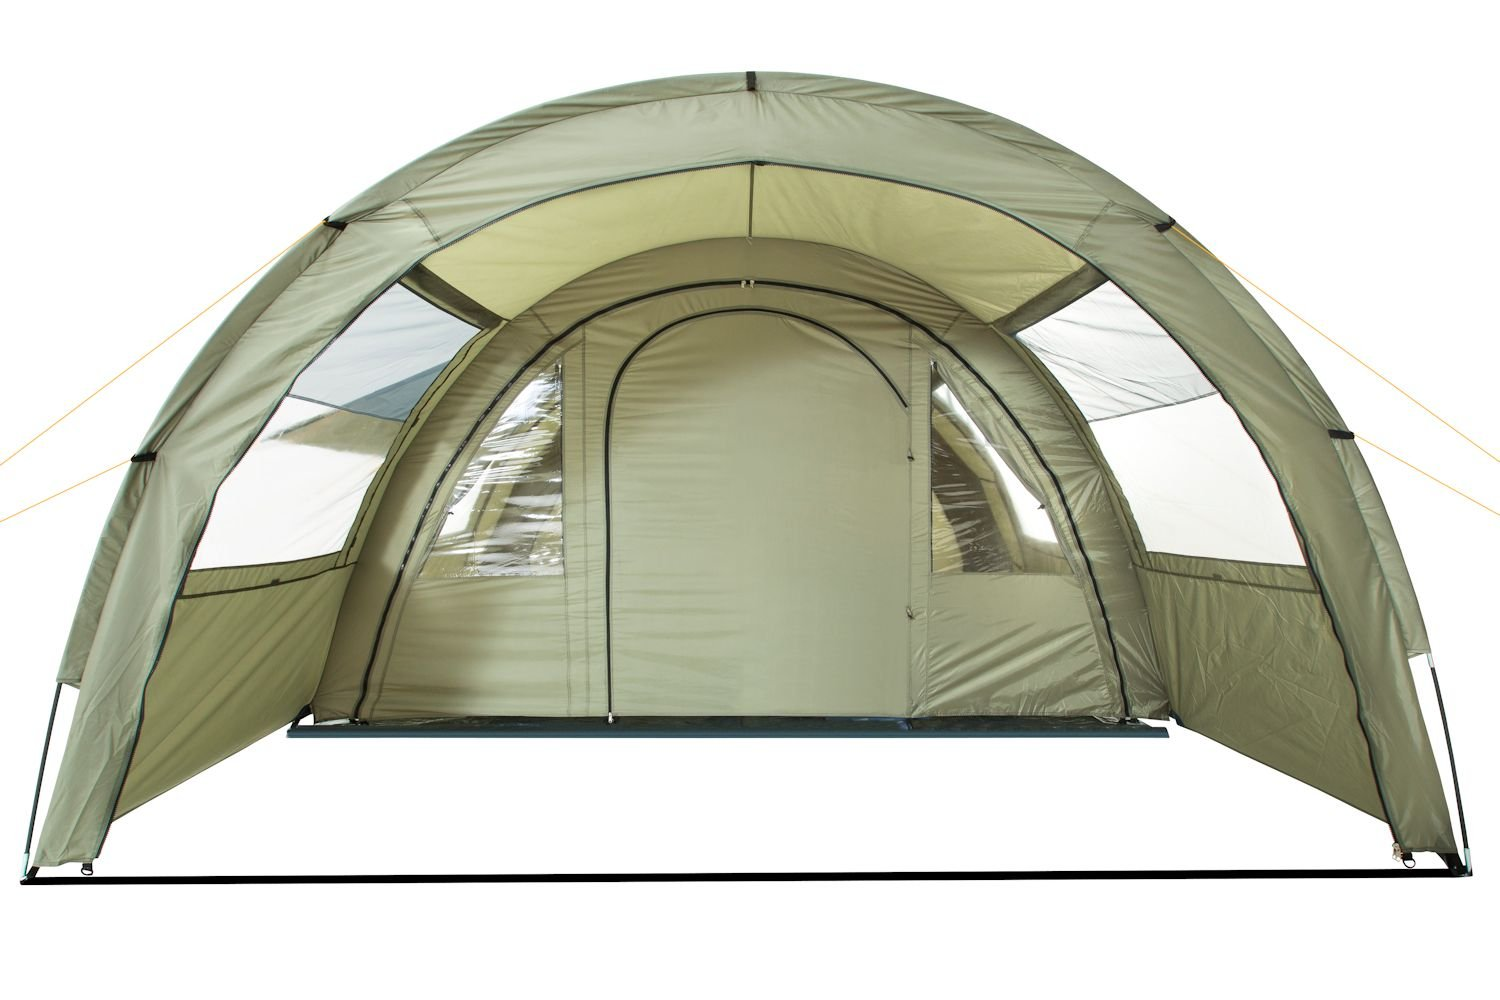 CampFeuer - Tunnel Tent with 2 Sleeping Compartments, Olive-Green, with Groundsheet and Movable Front Wall 4